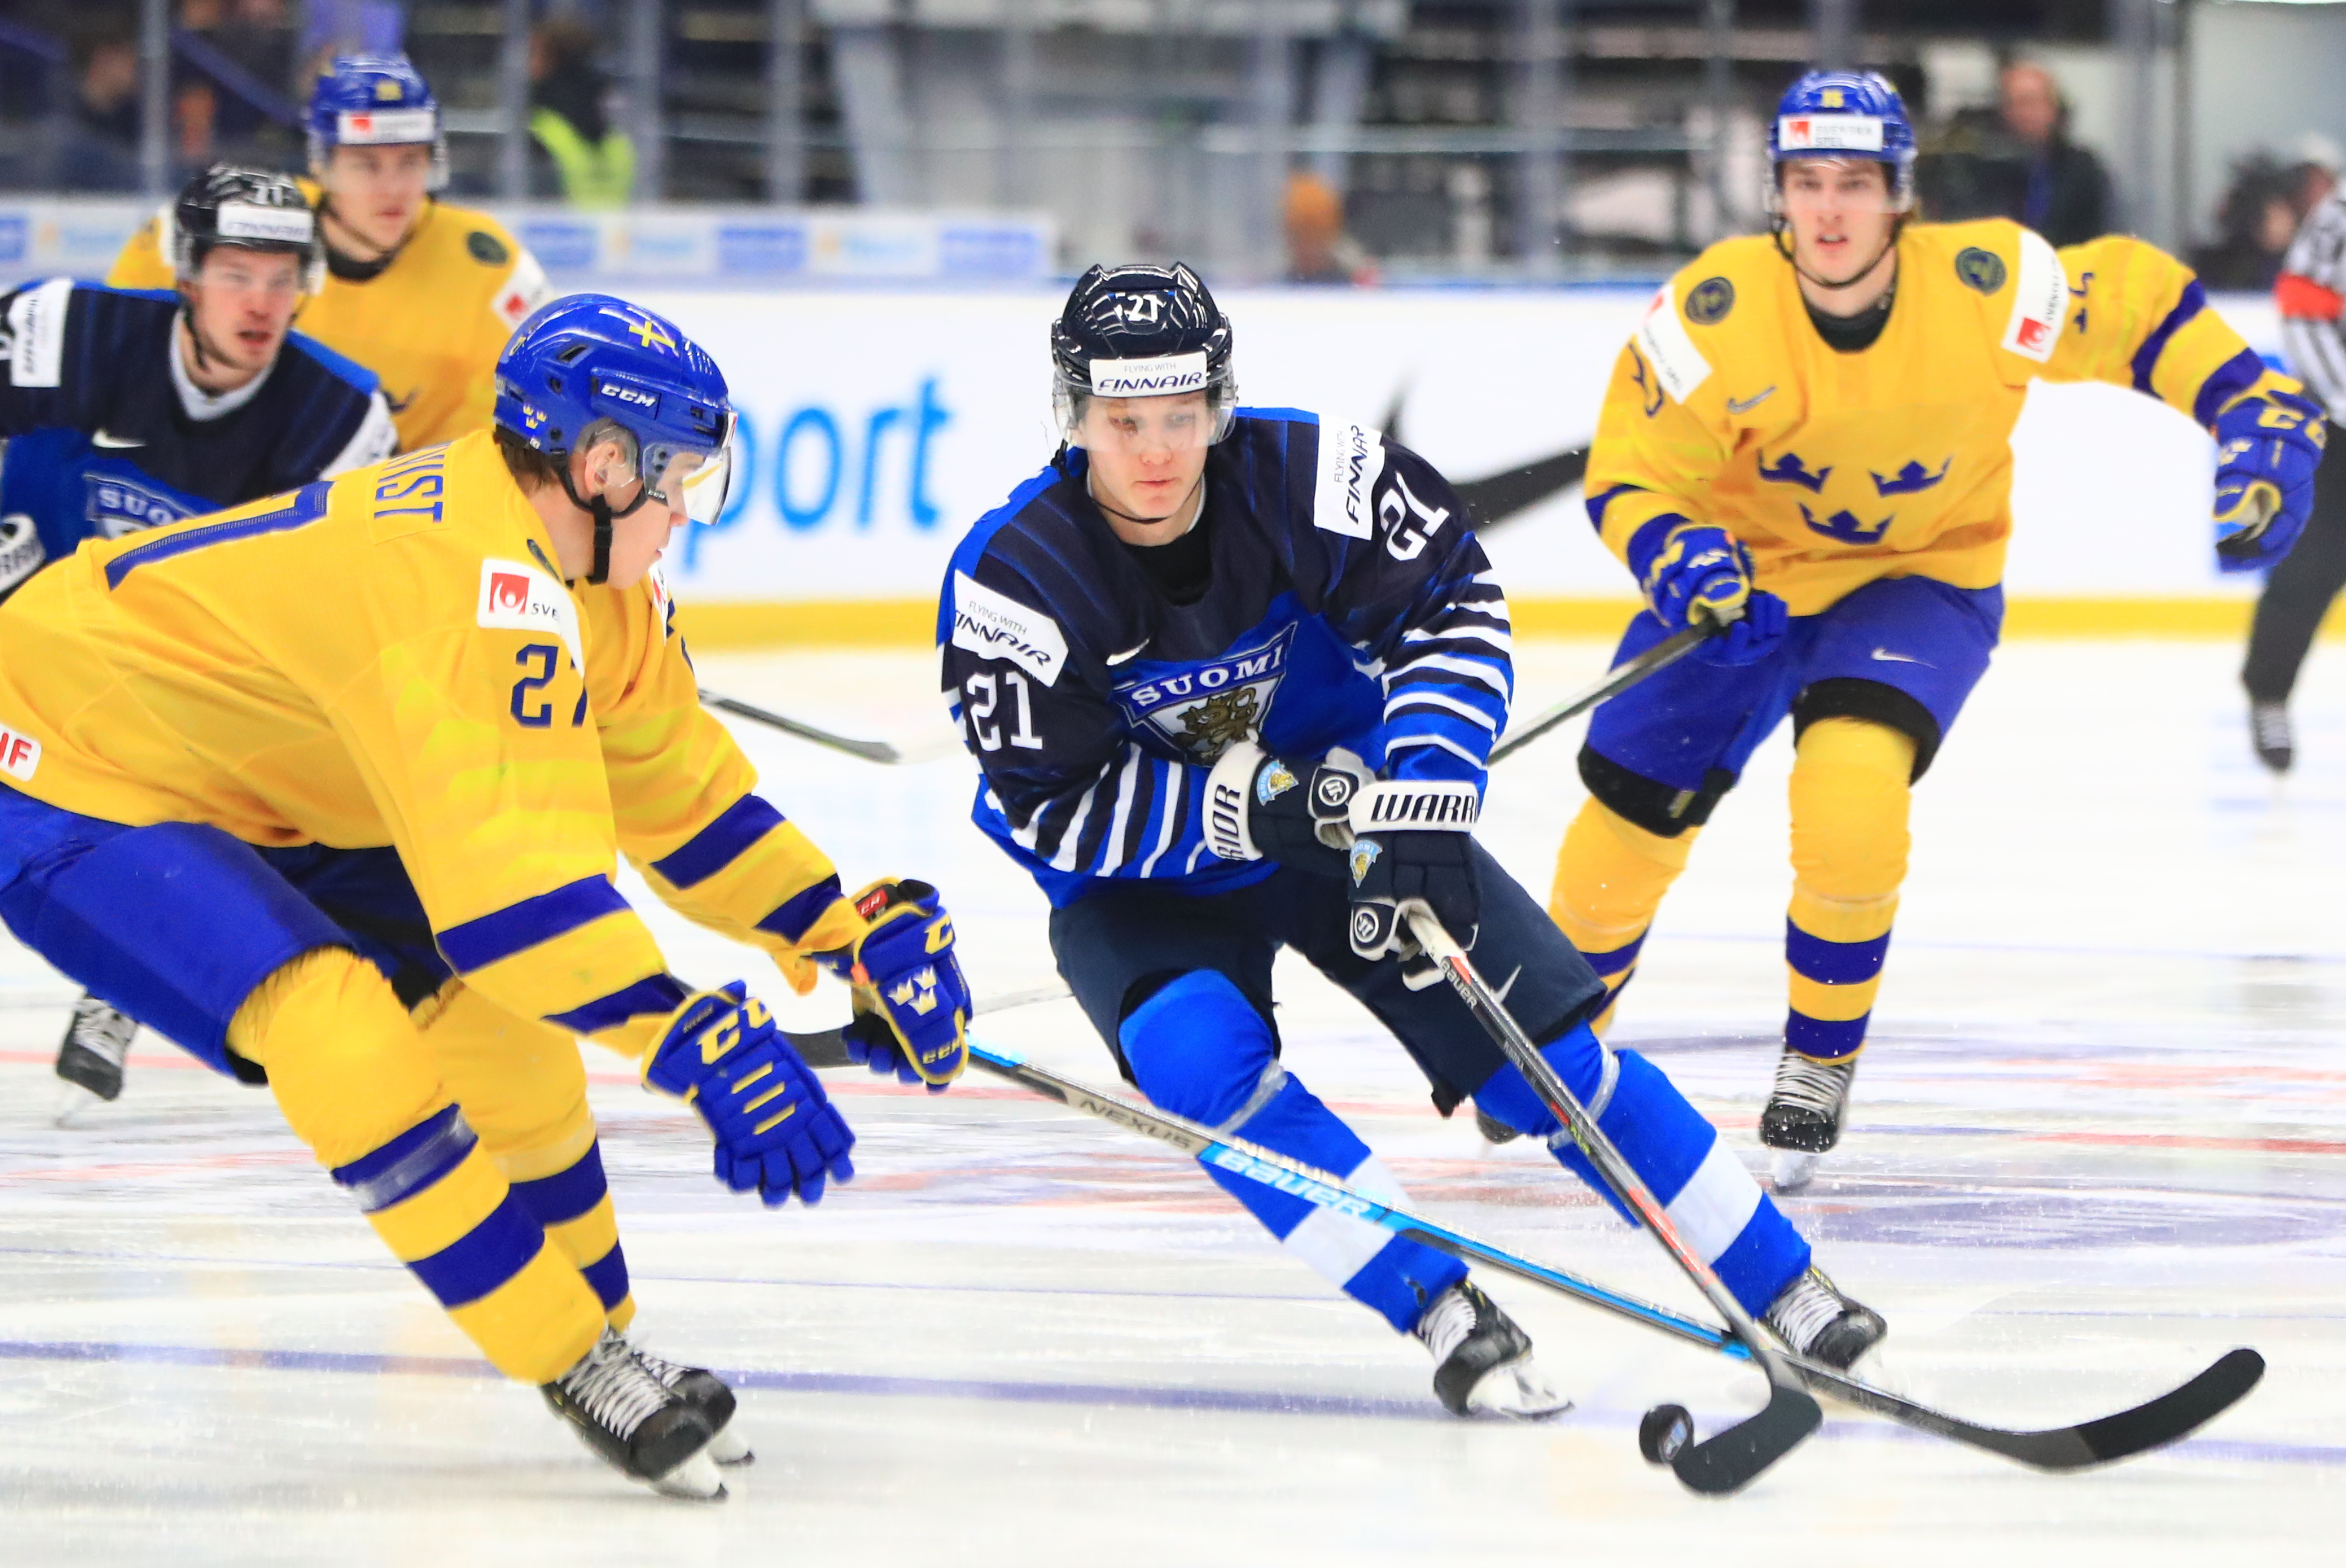 OSTRAVA, CZECH REPUBLIC - JANUARY 5, 2020: Sweden's Nils Hoglander (L front), and Finland's Patrik Puistola (C) in the 2020 IIHF World Junior Ice Hockey Championship bronze medal match between Sweden and Finland at Ostravar Arena.